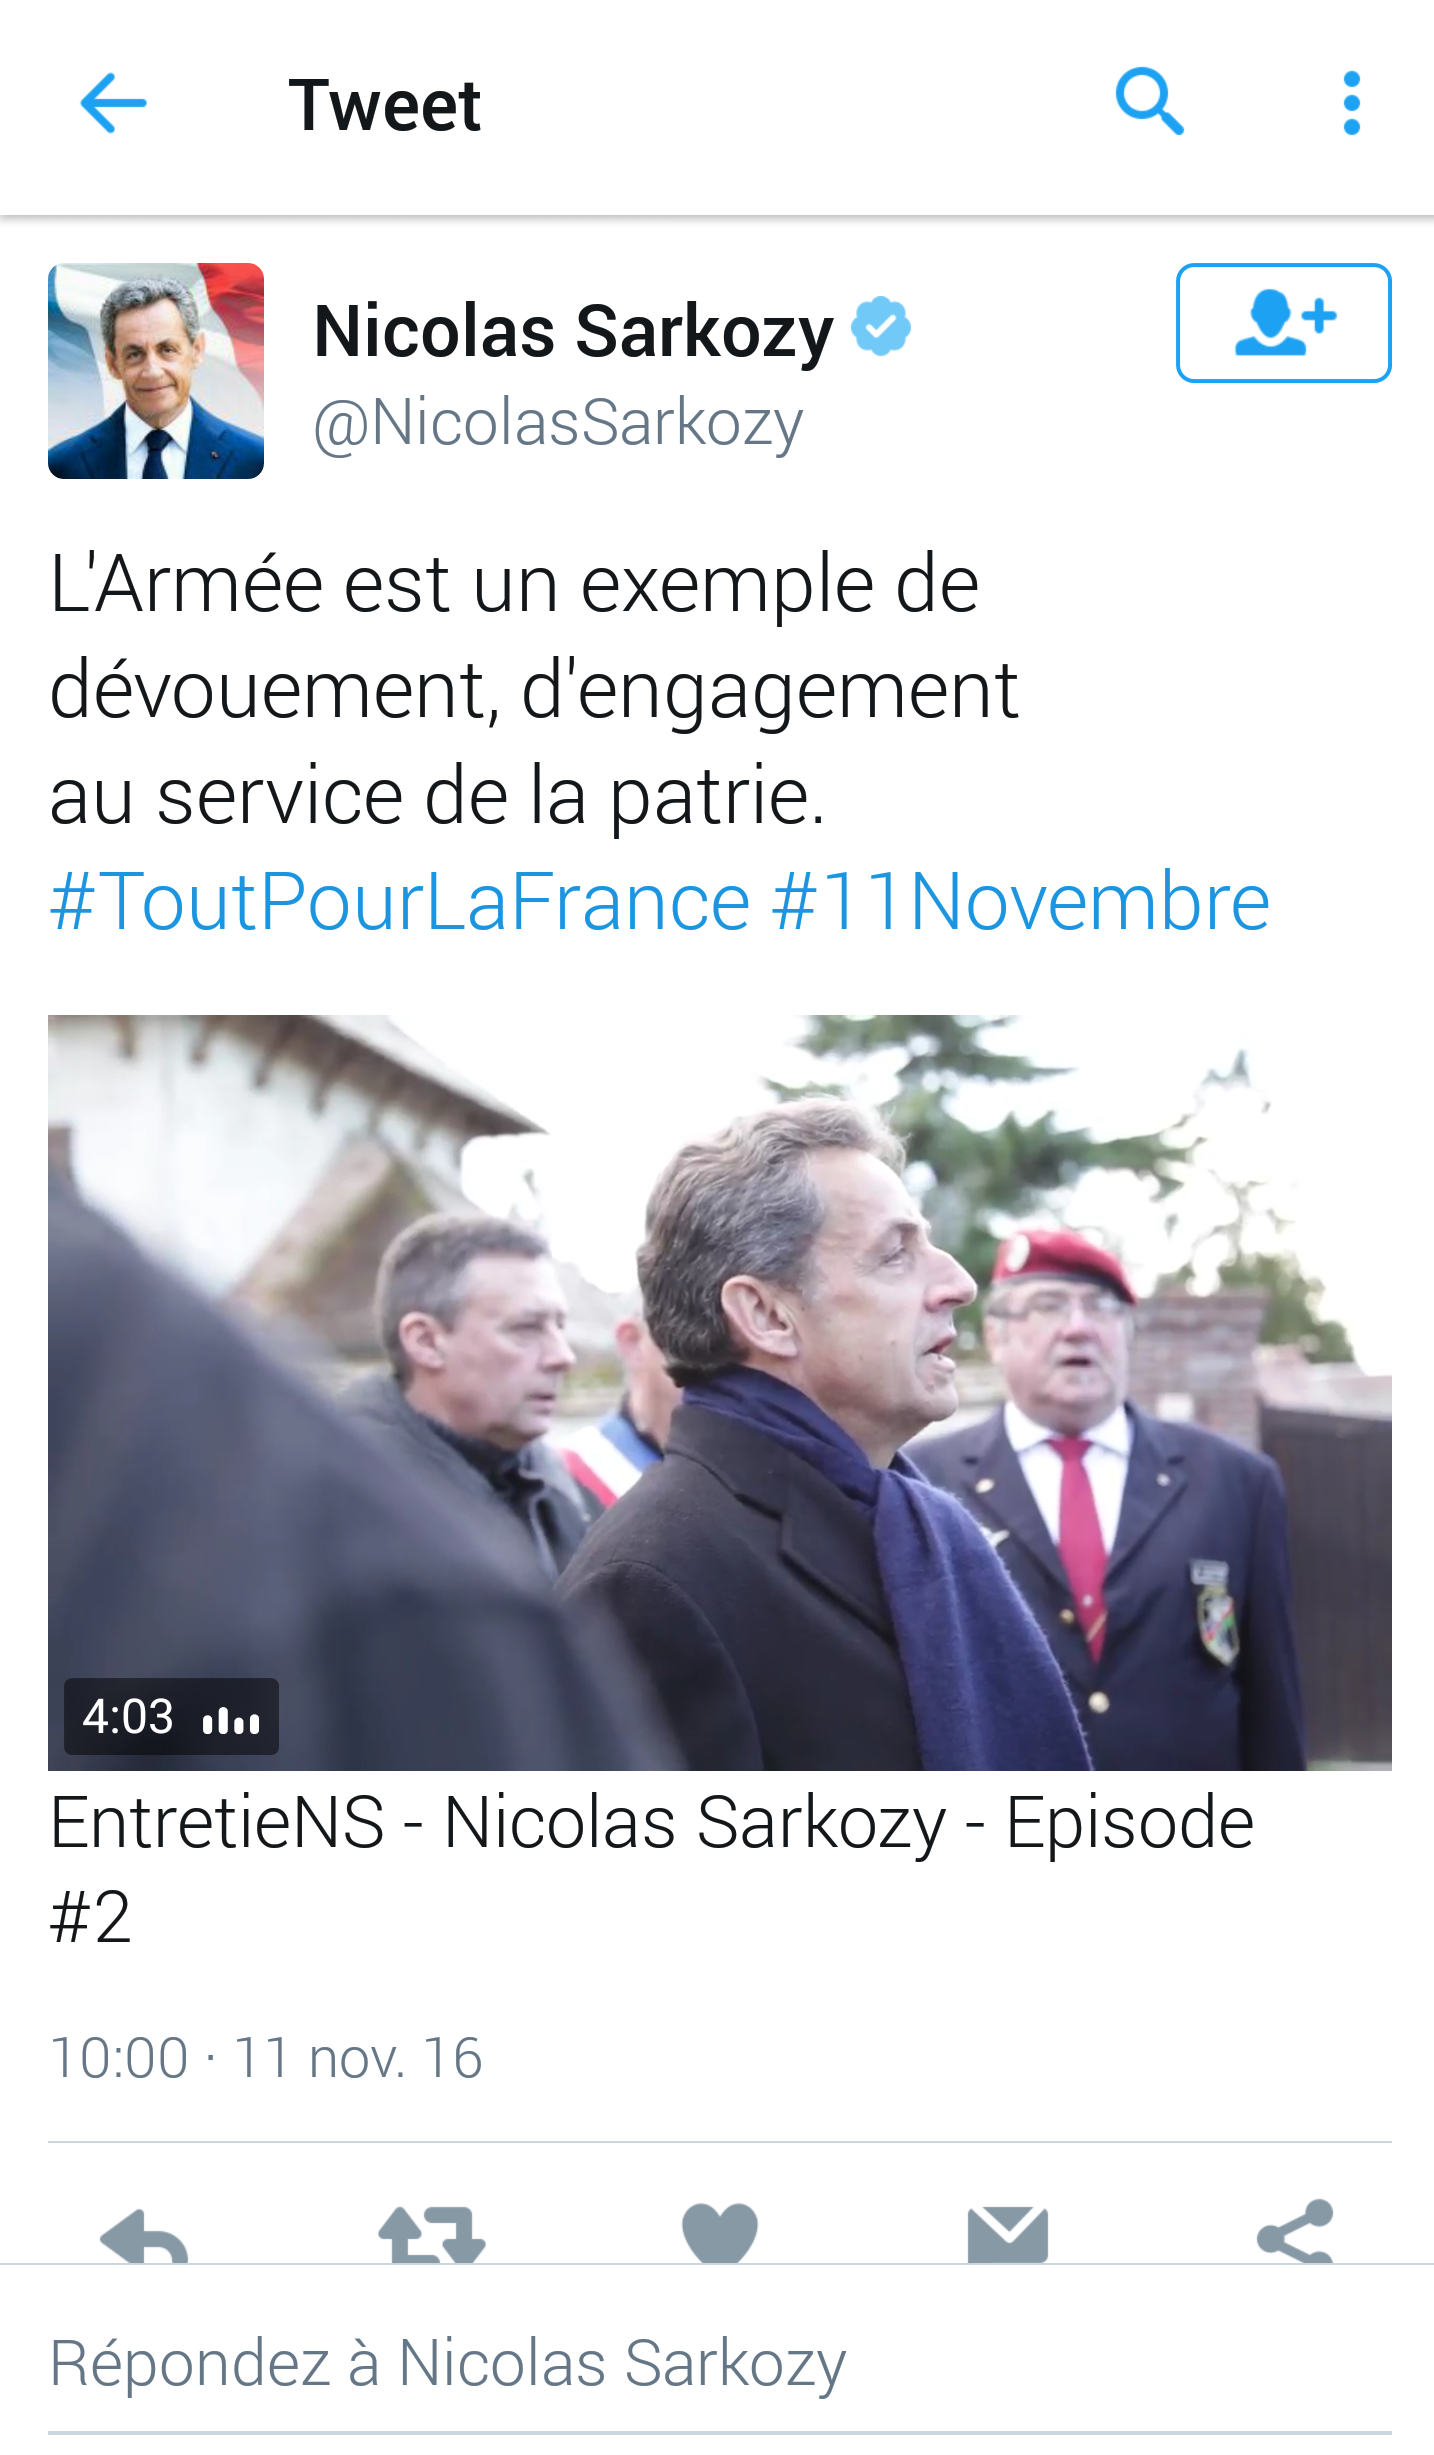 sarkozy twitter video digitalebox